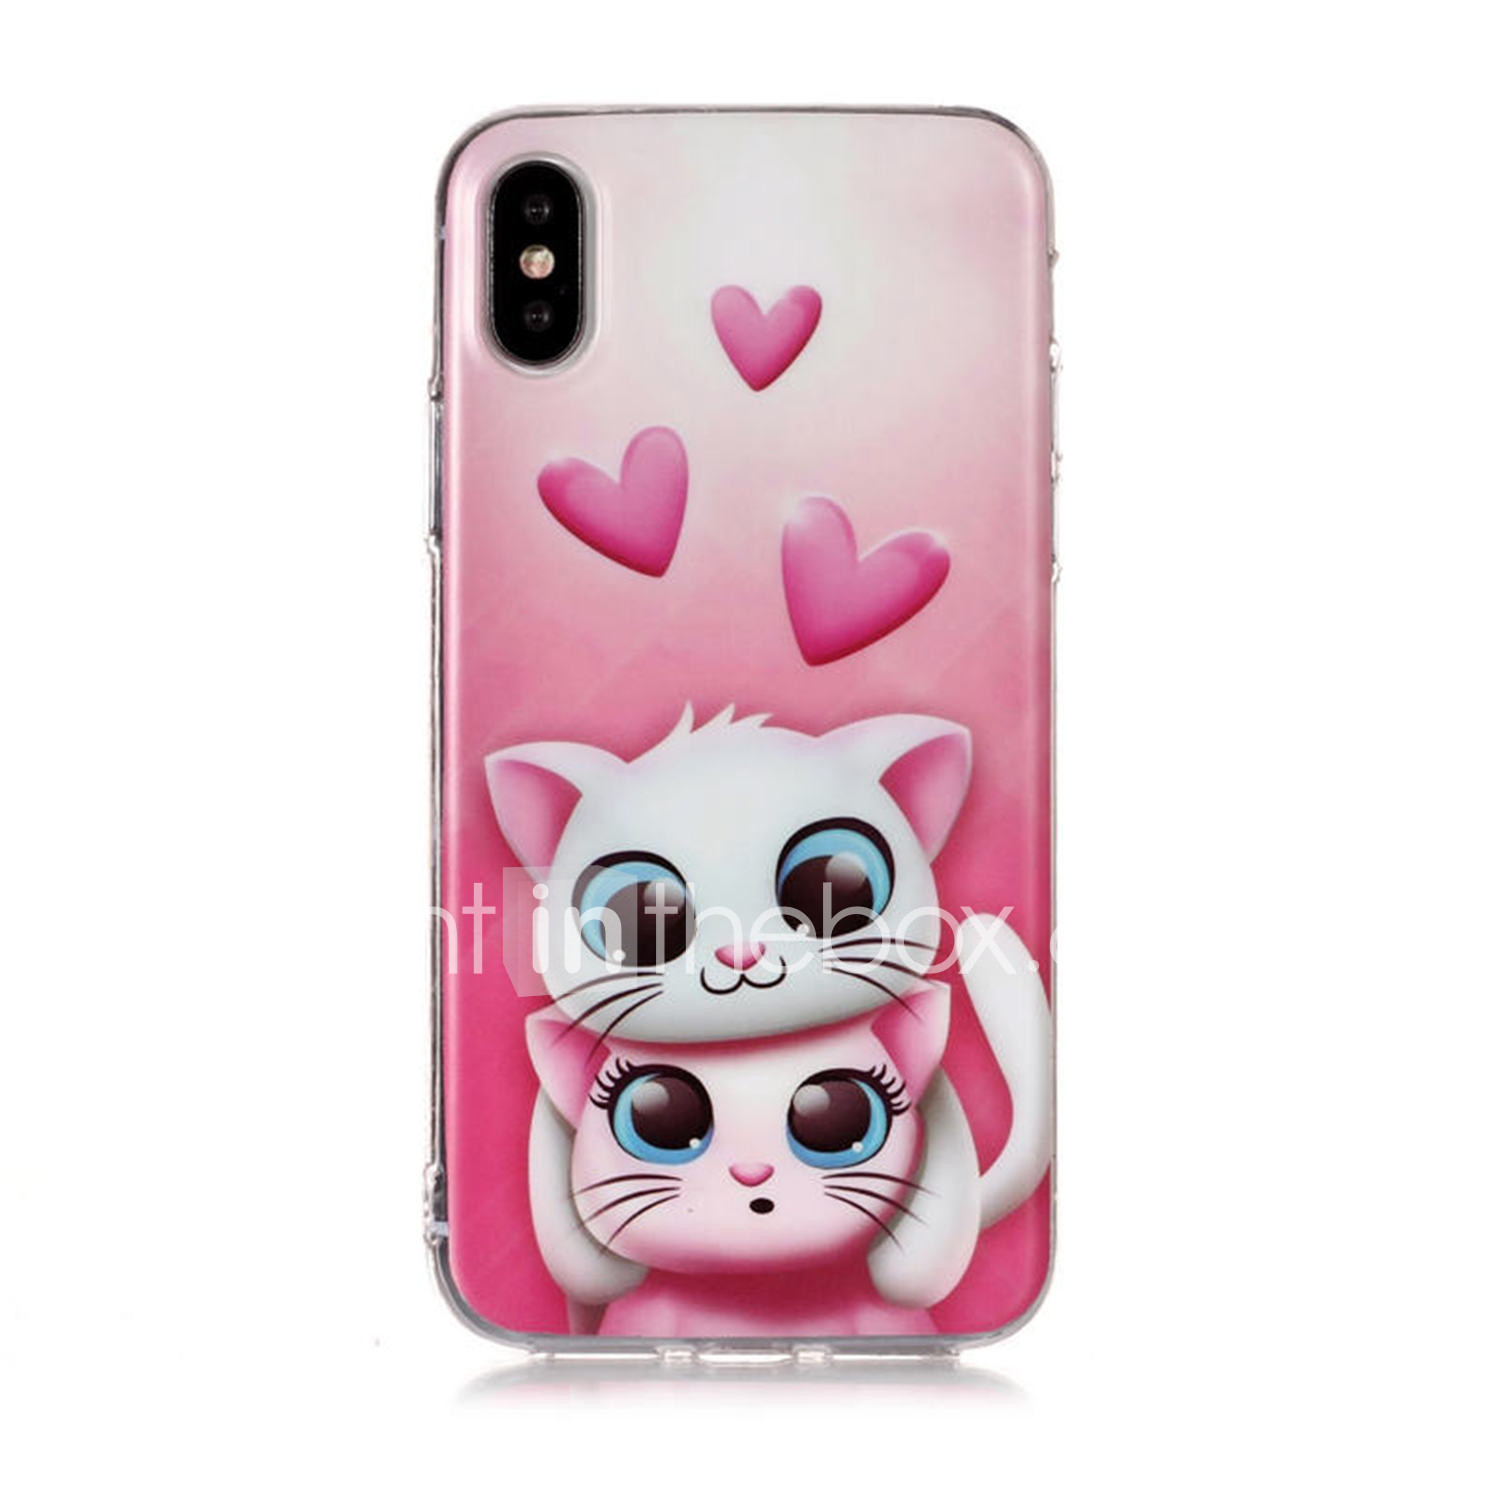 official photos 94e9e 6ee2f Case For Apple iPhone XS / iPhone XR / iPhone XS Max Pattern Back Cover Cat  / Heart Soft TPU